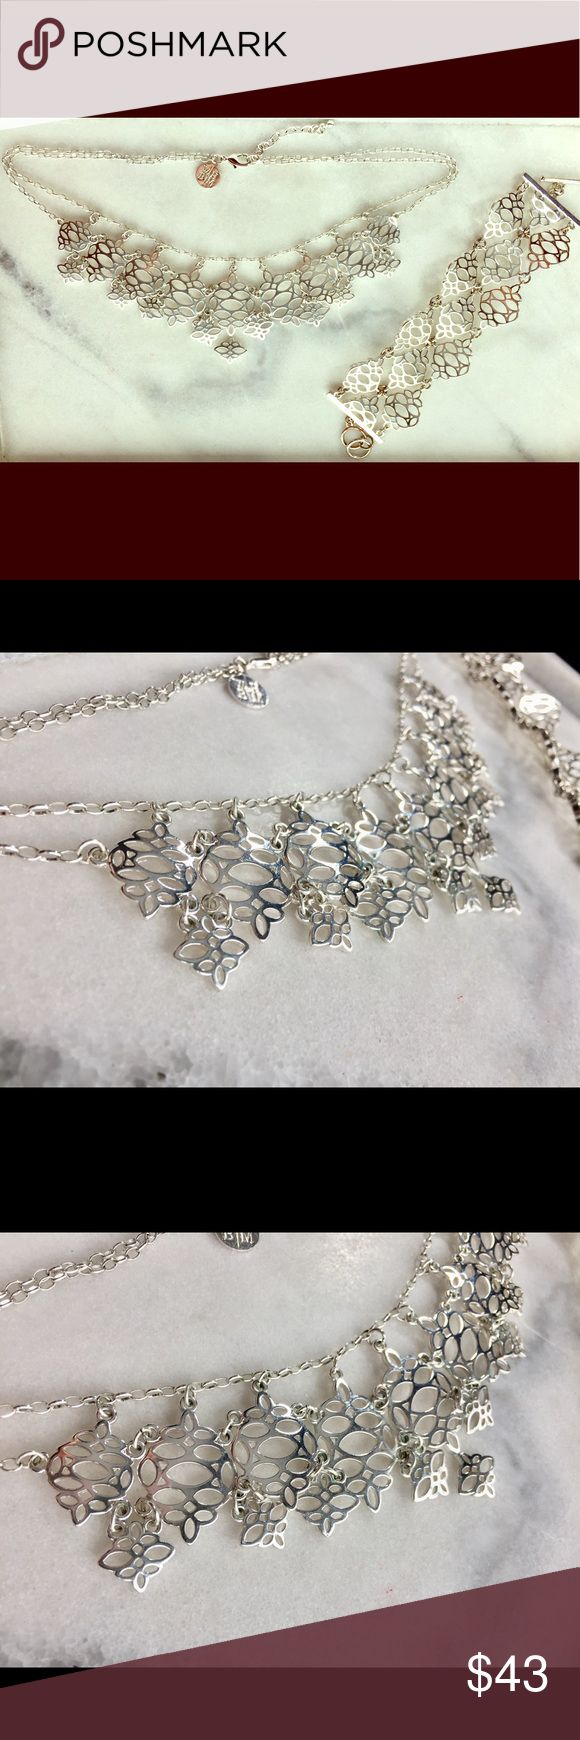 """White House Black Market Necklace & Bracelet Set Gorgeous silver cutout floral pattern necklace & bracelet set from WHBM. Excellent condition. Necklace is 18"""" long with 2"""" extender. Bracelet is 7"""" long with 1"""" extender. Cleaned ultrasonically just for you!  🚨BUY ONE GET ONE FREE SALE ALERT🚨 1. Add one piece of jewelry worth $10 or more to a bundle. 2. Shop my closet for a second piece of jewelry, worth $10 or less. Add the second piece to your bundle. 3. The second piece is FREE! Offer for…"""